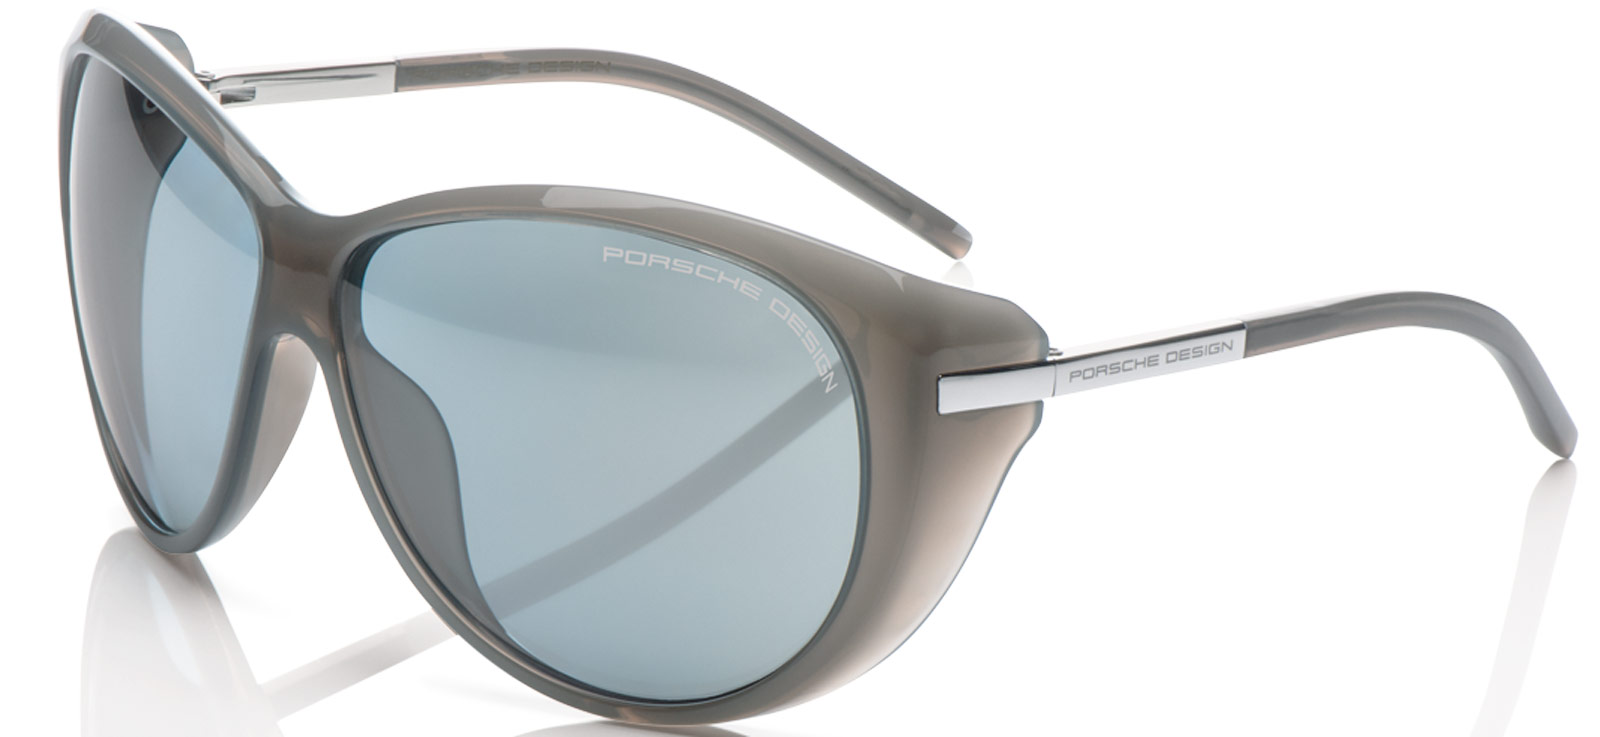 Porsche Design P8602 D Women's Light Grey Transare